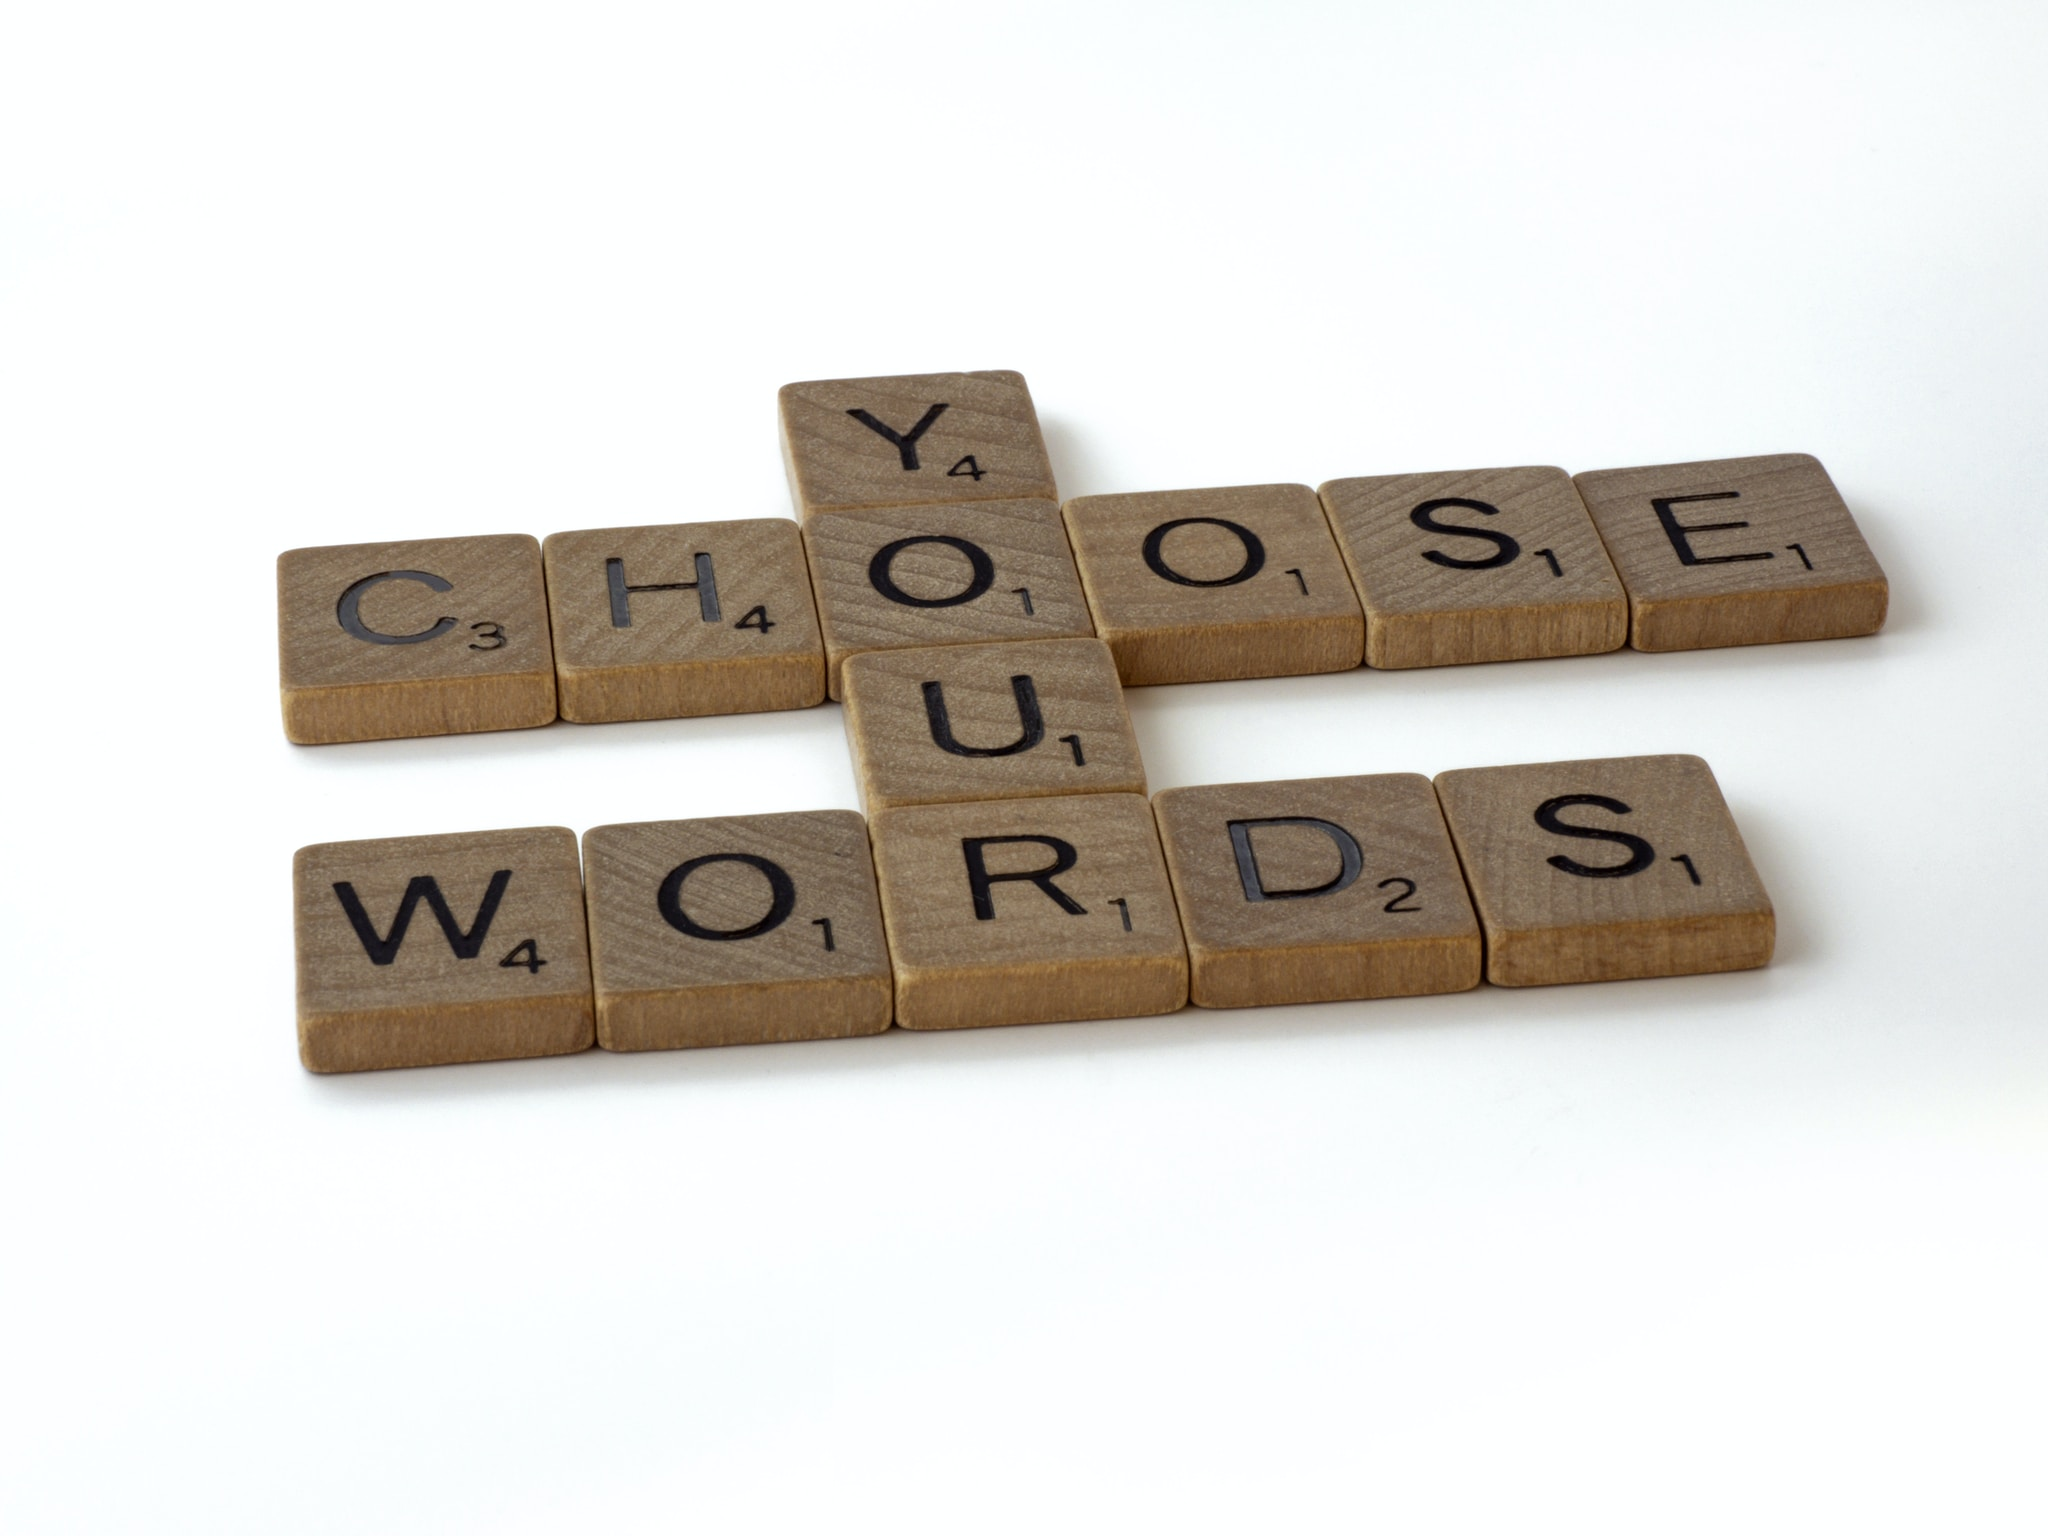 Conscious language – words matter